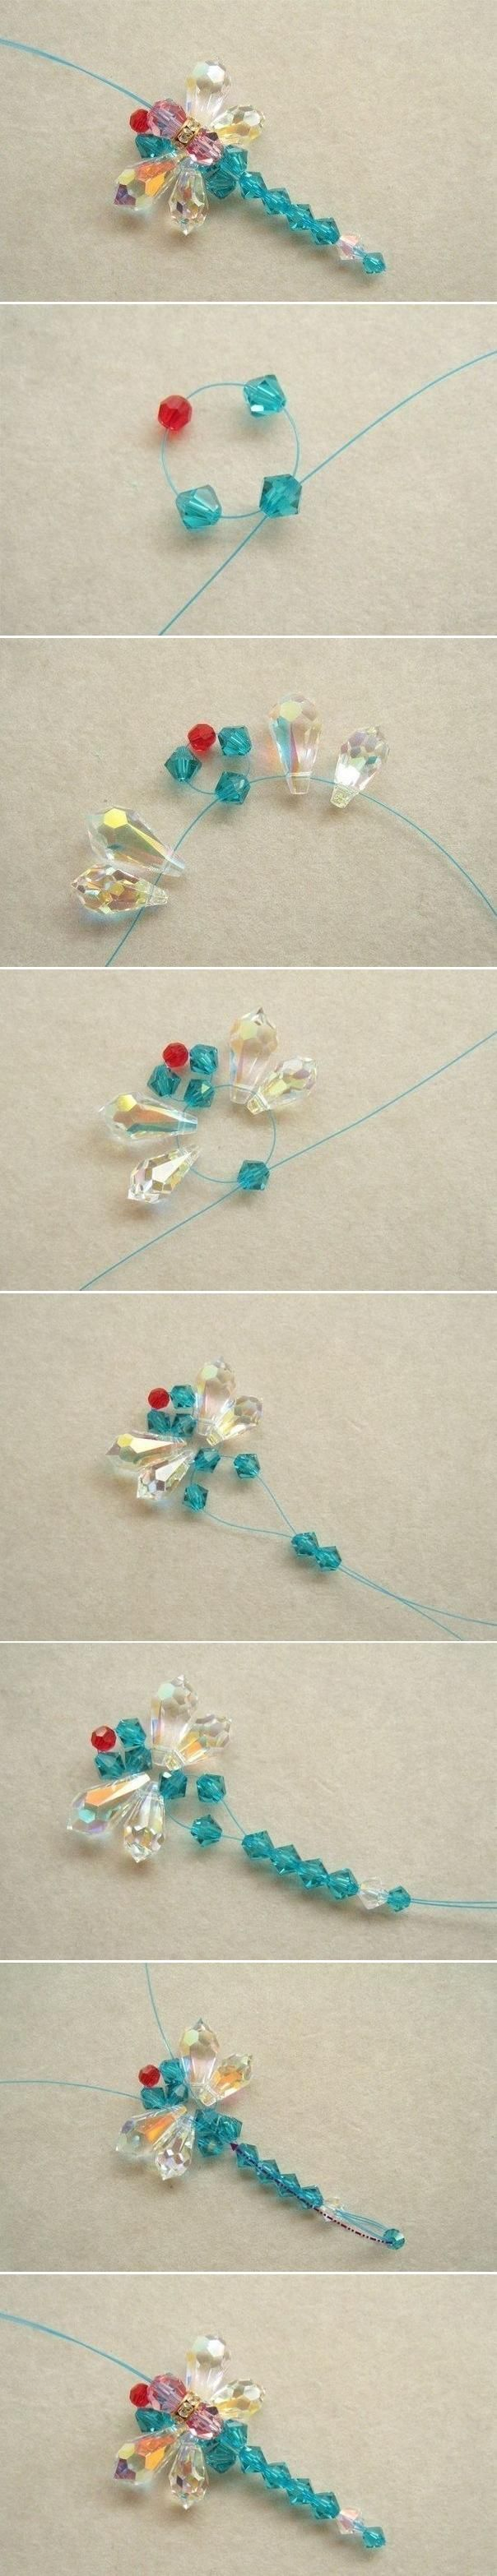 DIY Beaded Dragonfly ( just the pics)